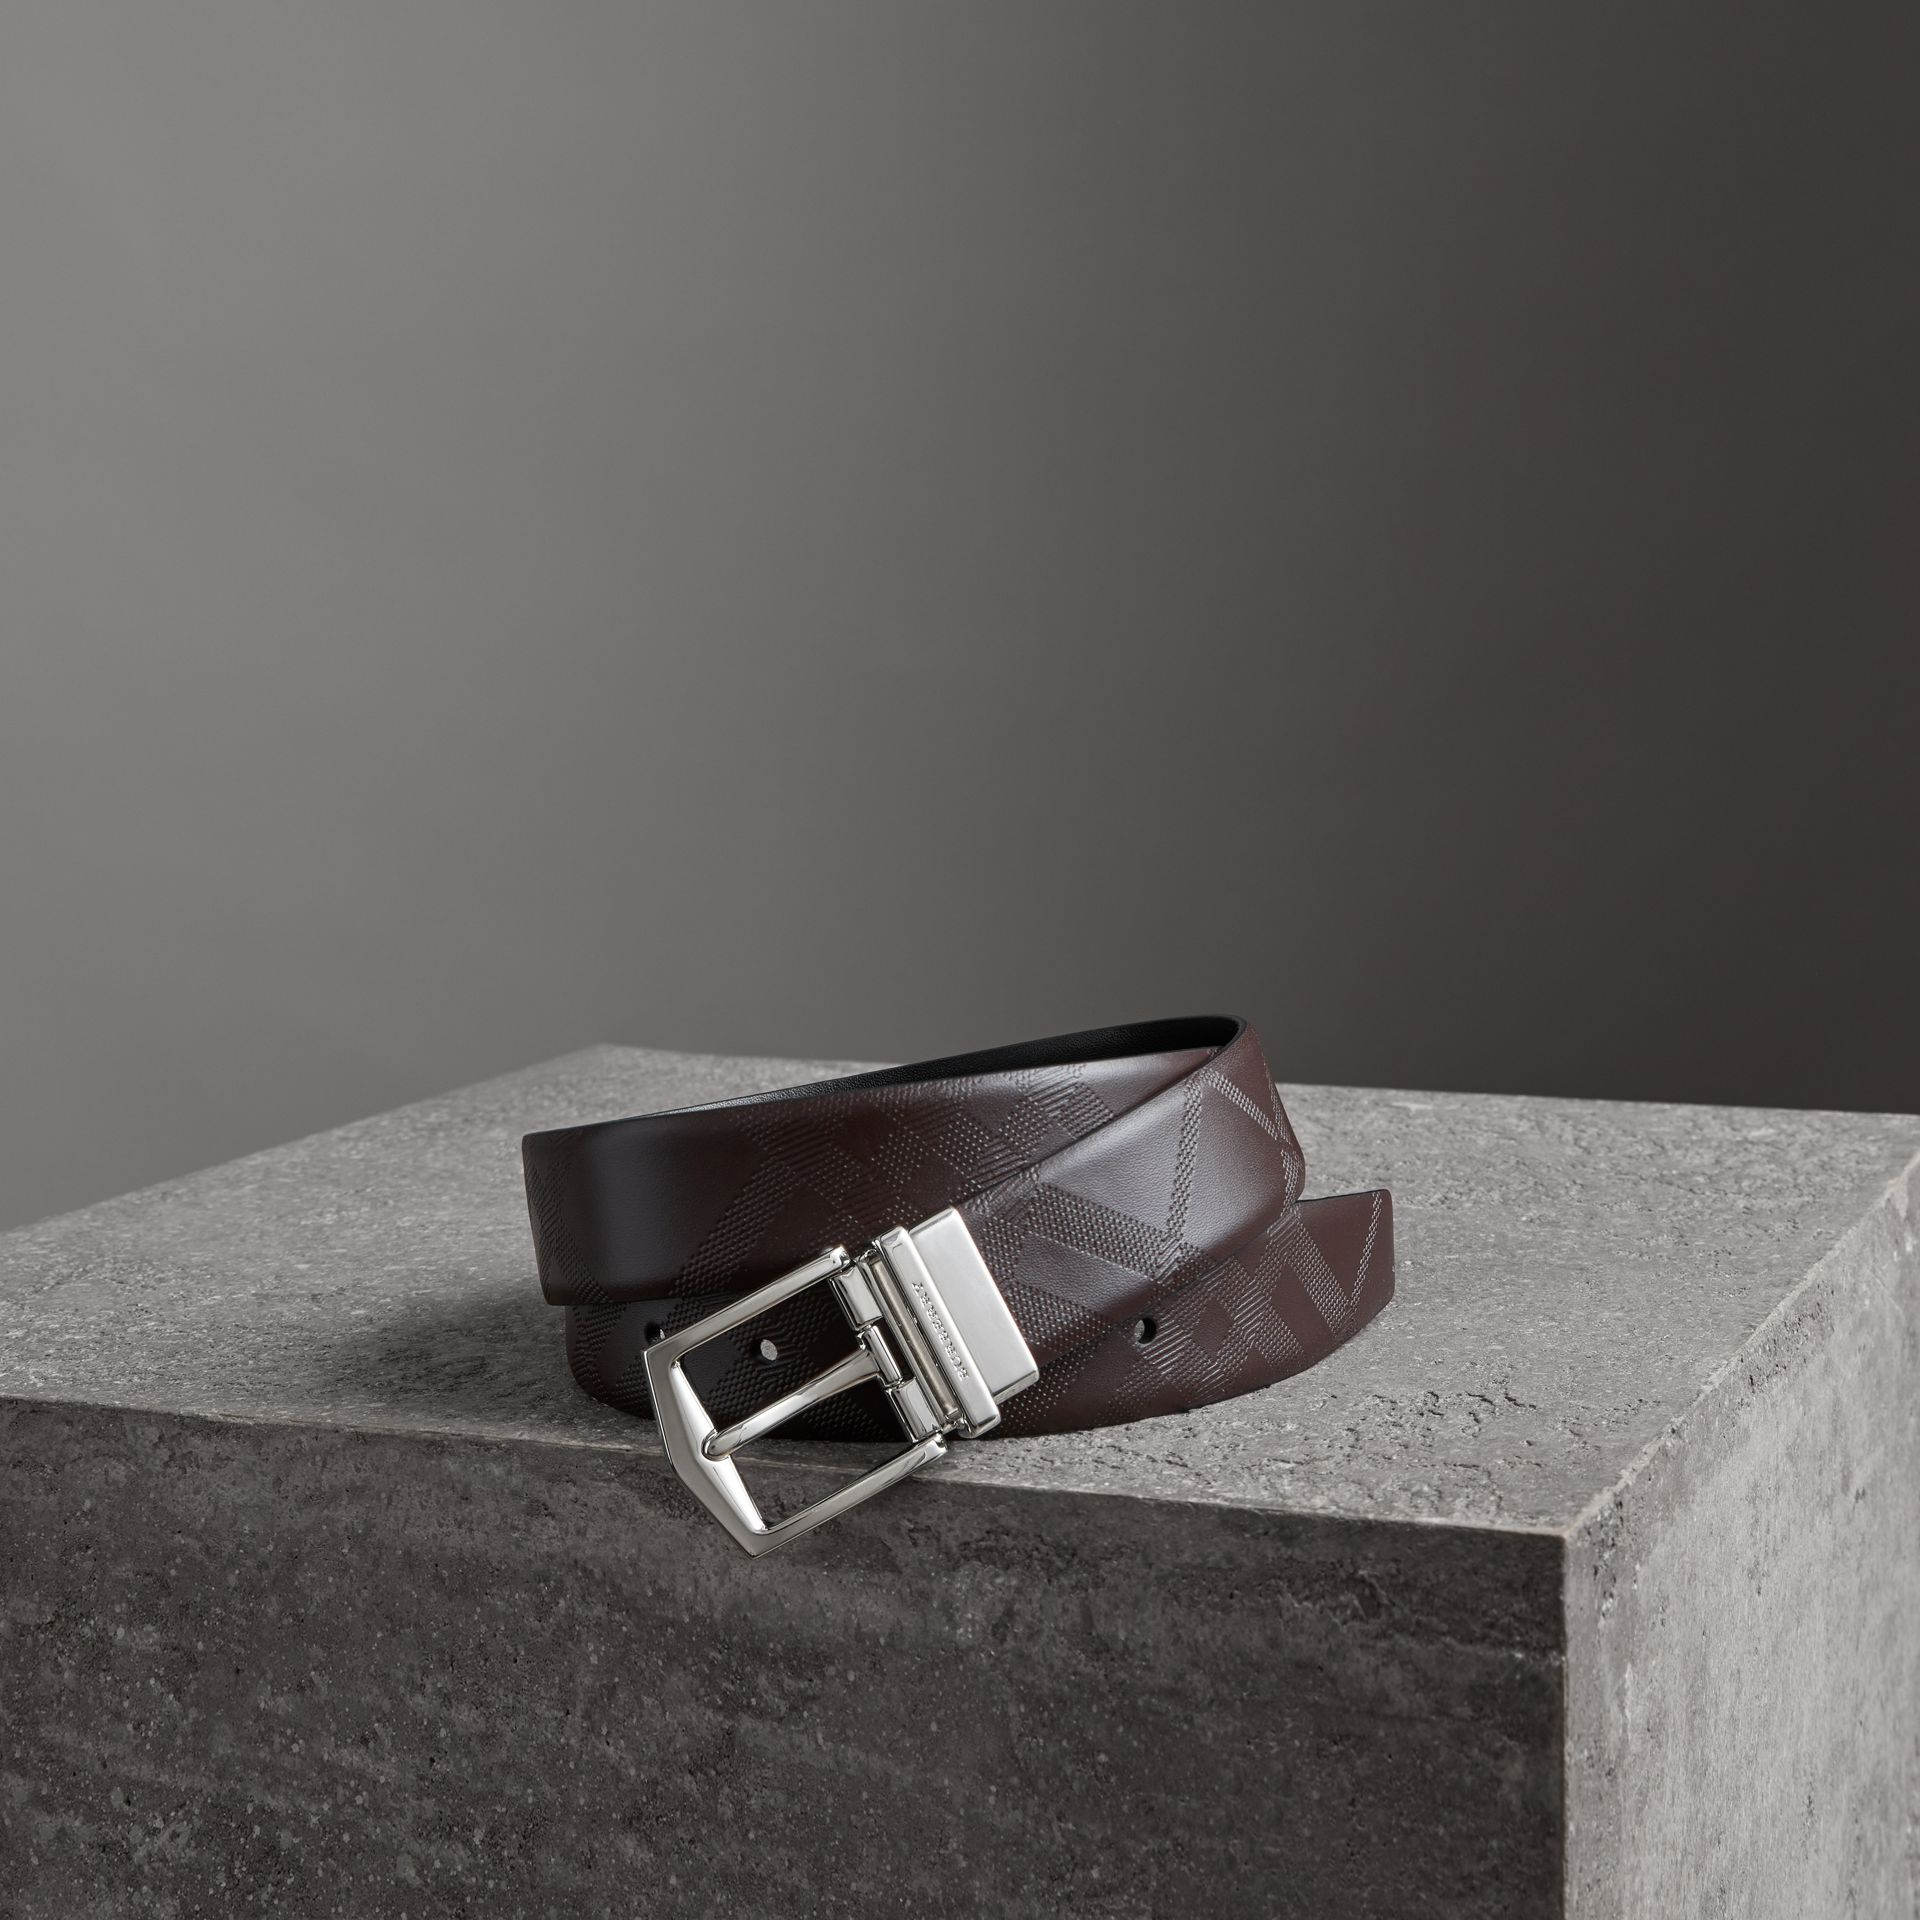 Ceinture réversible en cuir London (Marron Girofle Sombre/noir) - Homme | Burberry - photo de la galerie 0